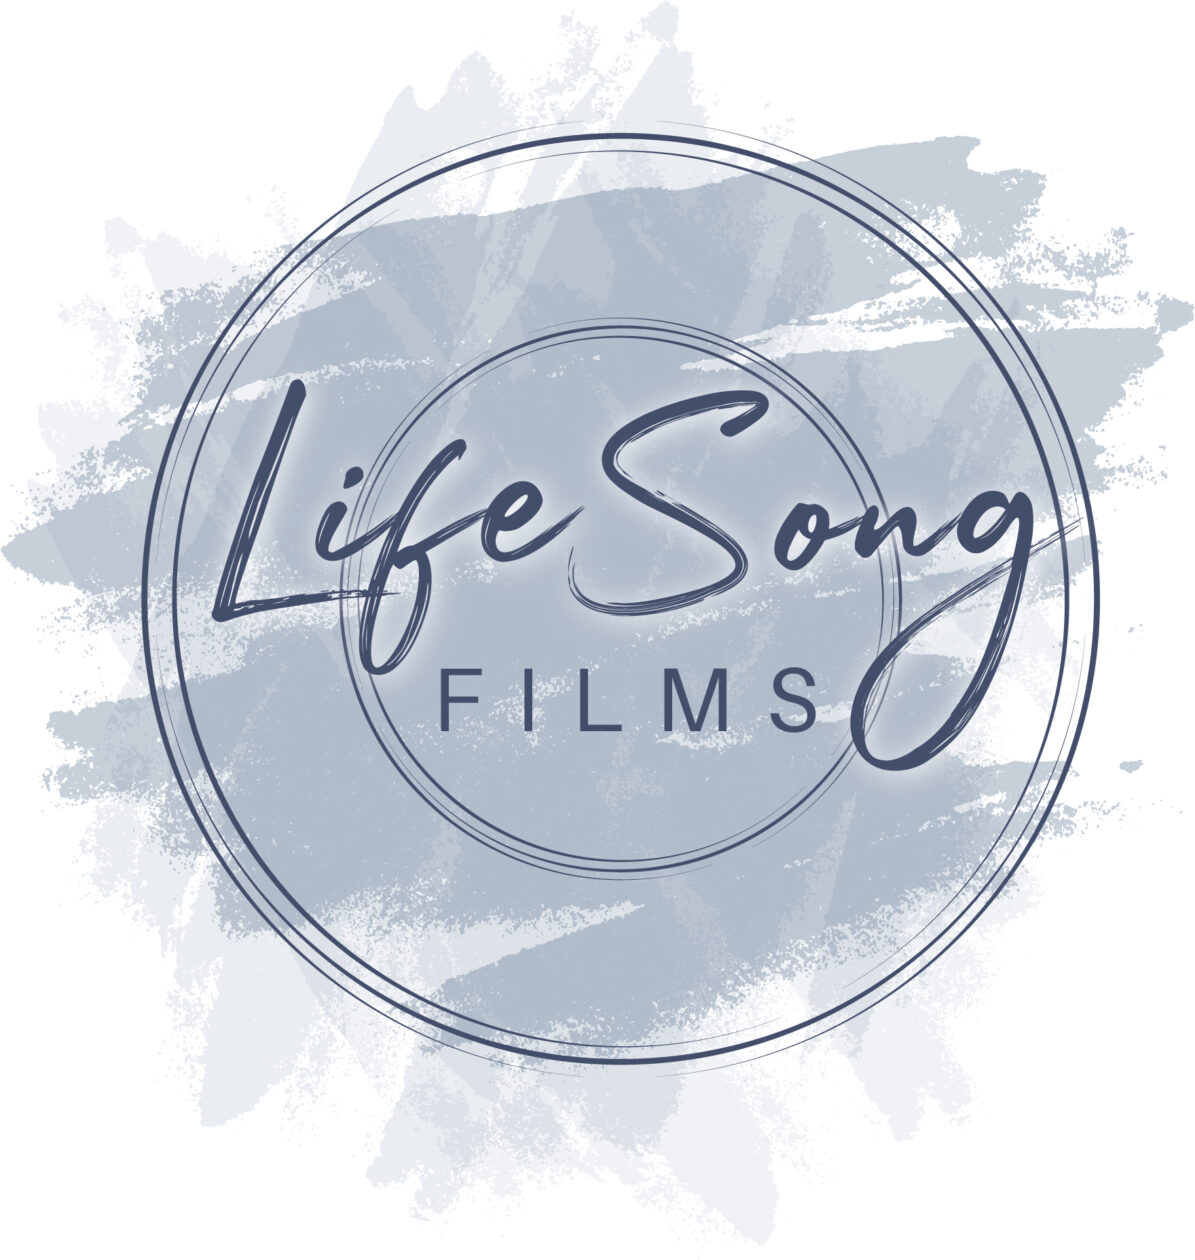 Lifesong Films